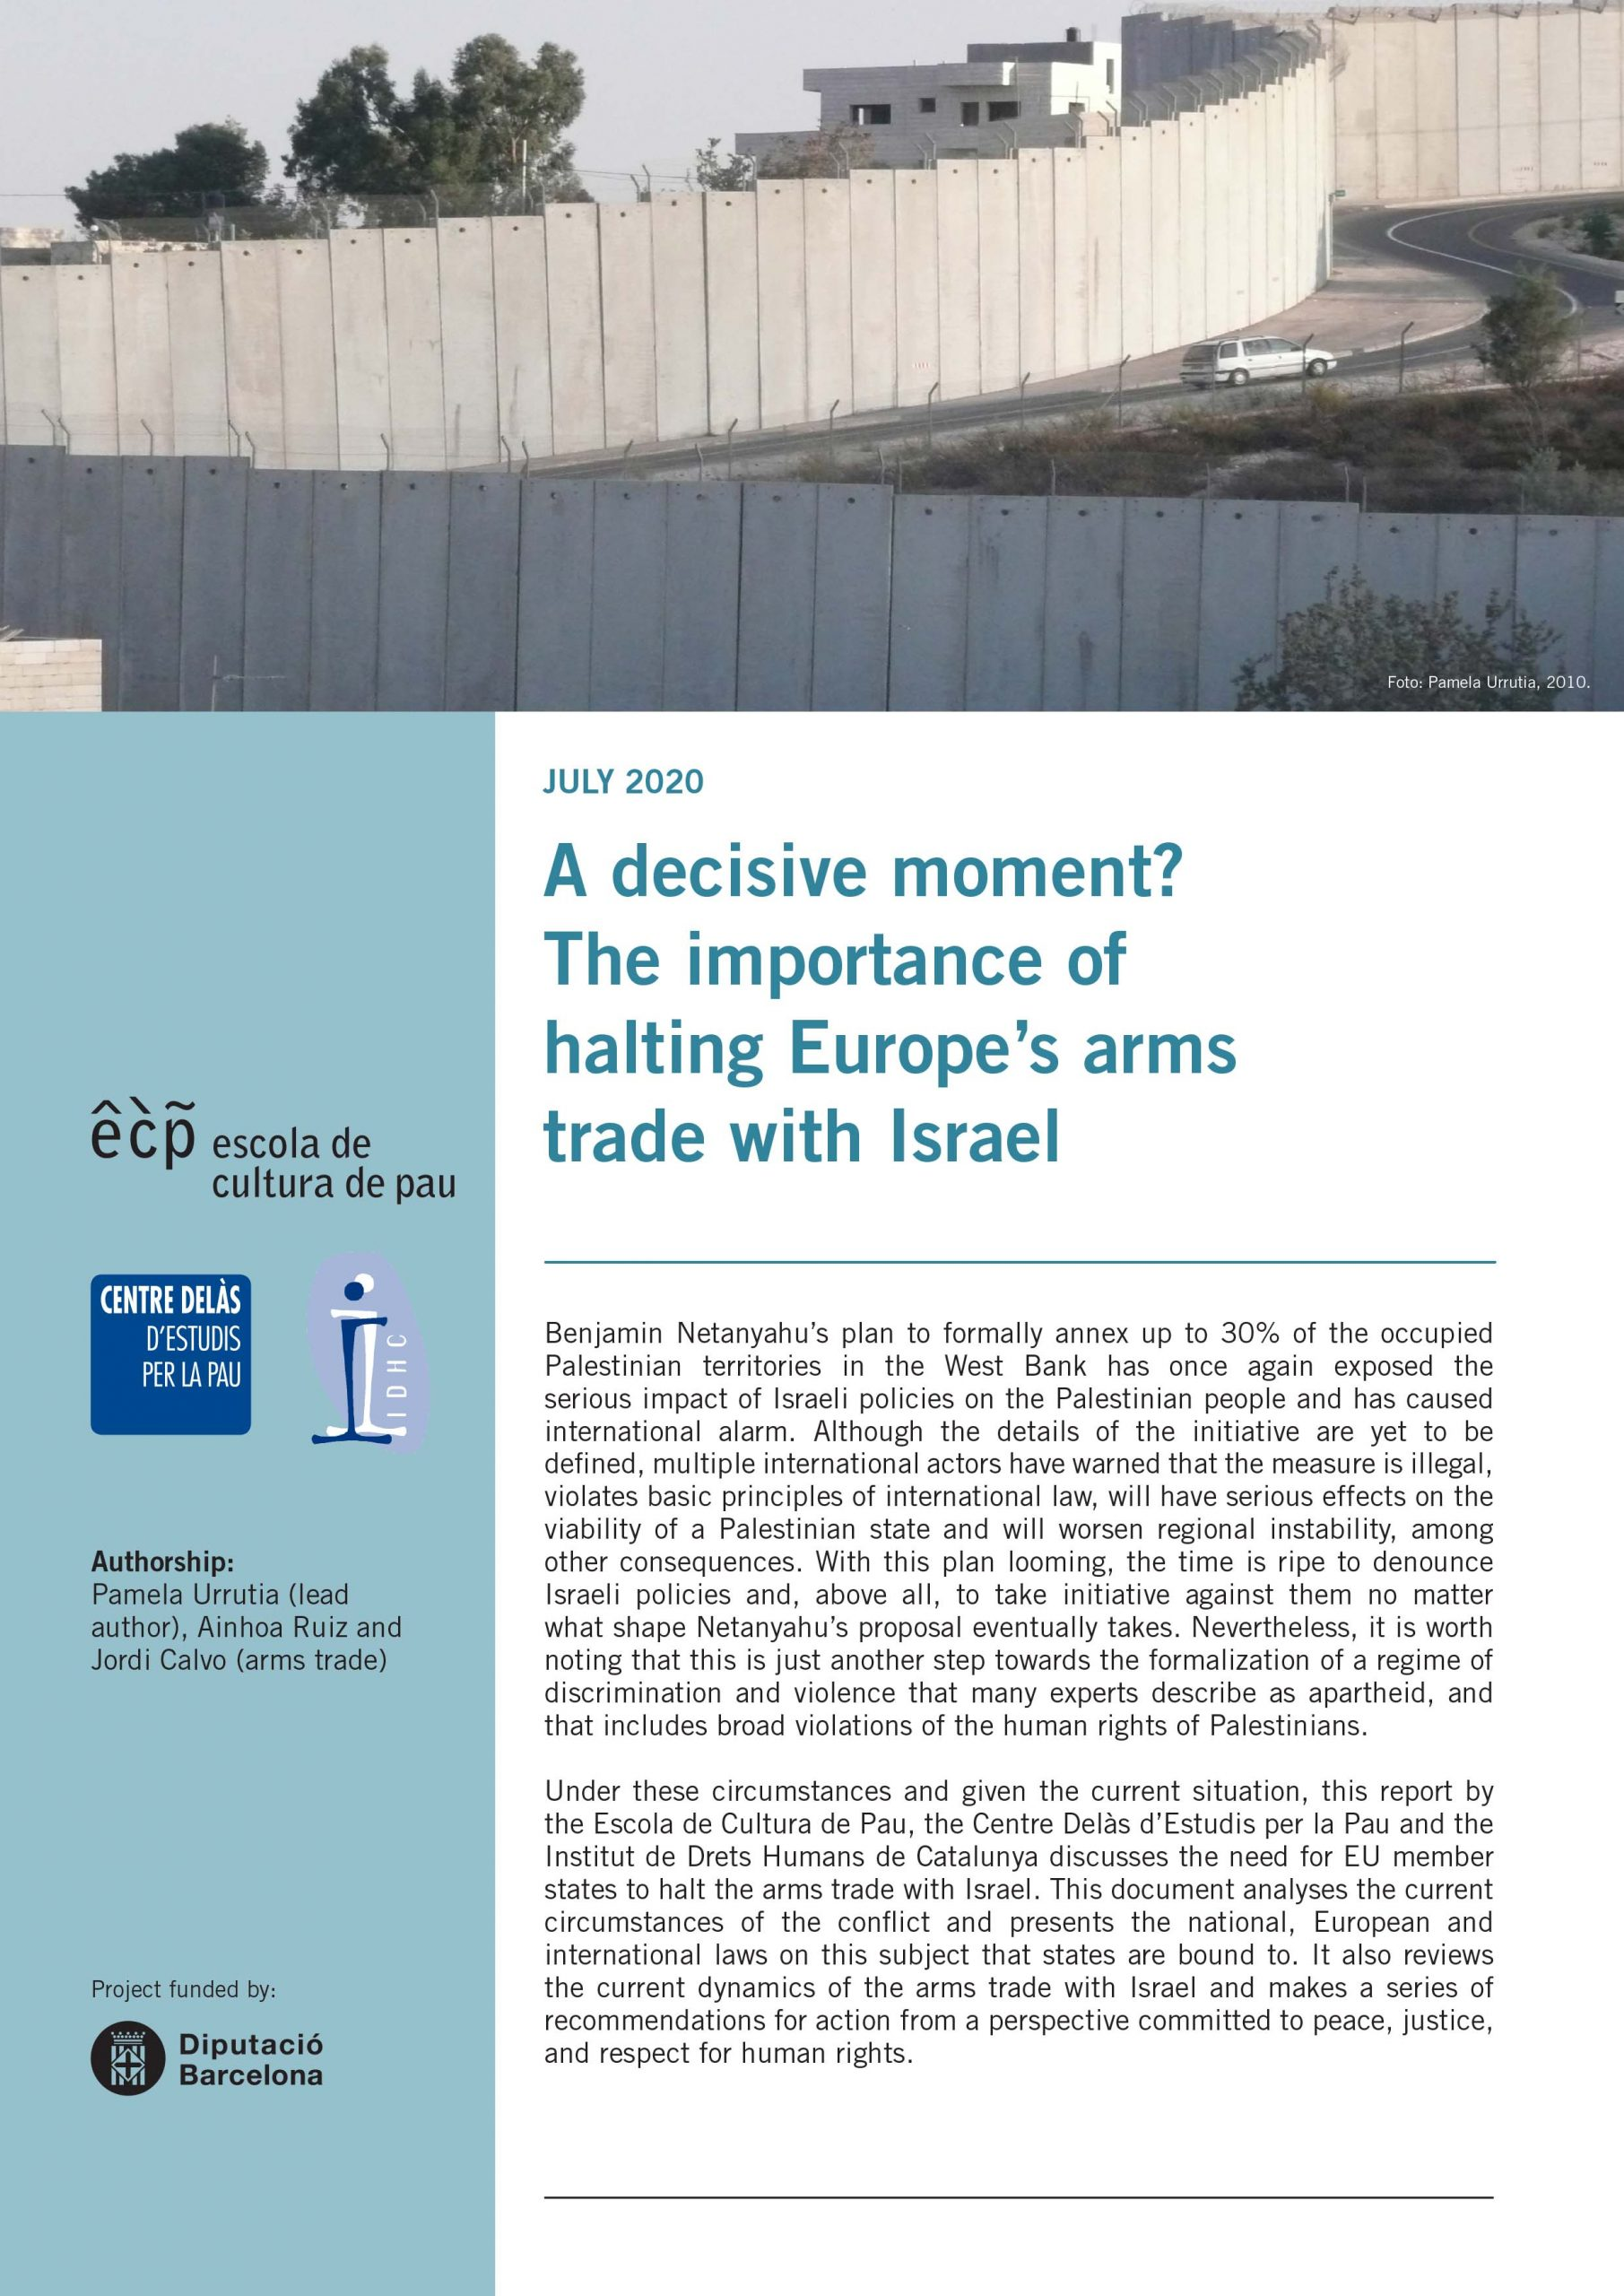 """Policy Paper from ECP, IDHC and Centre Delàs: """"A decisive moment? The importance of halting Europe's arms trade with Israel"""""""